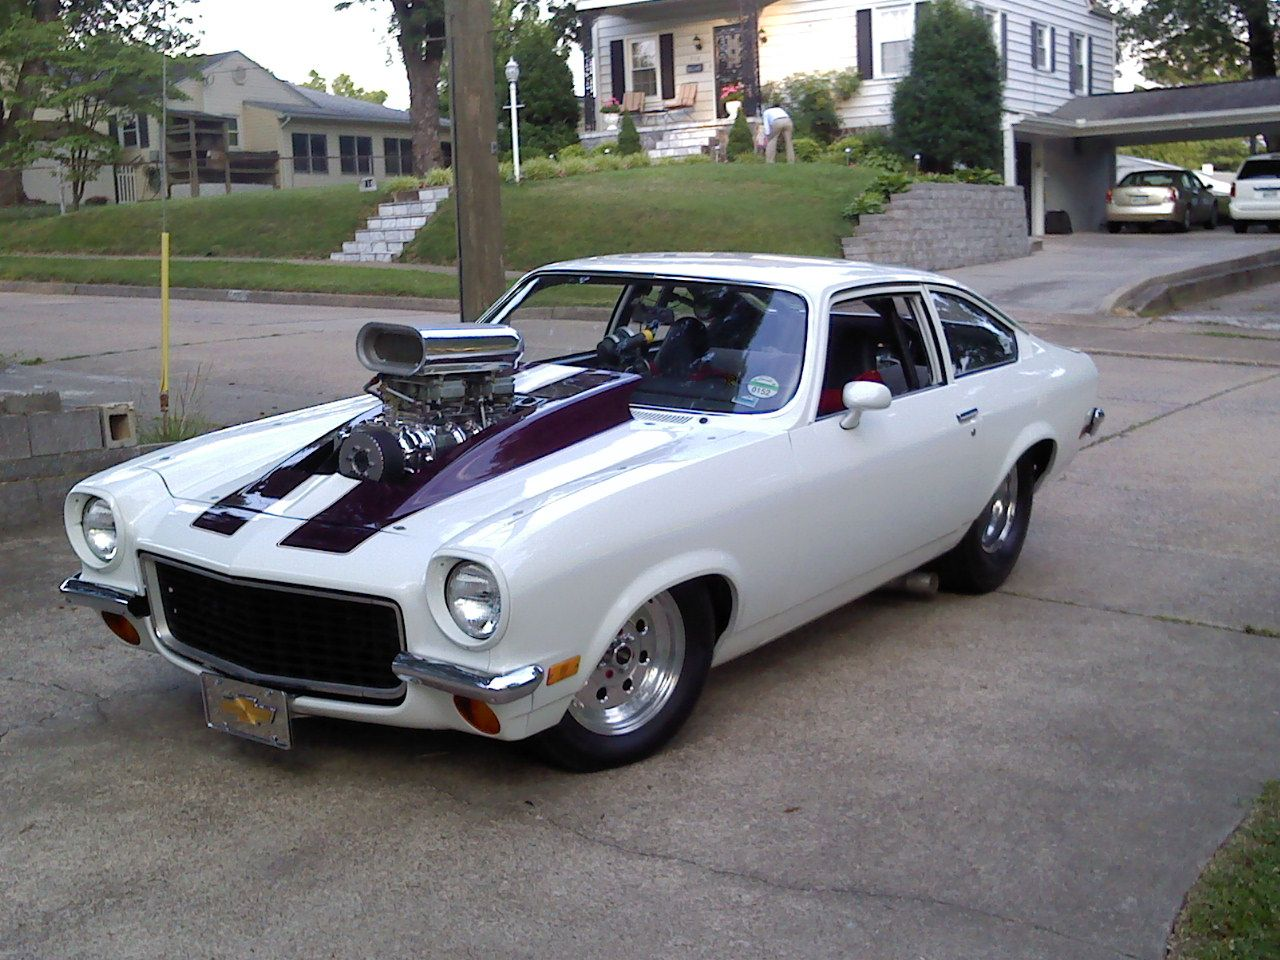 1971 Chevrolet Vega Come To Think Of It When Was The Last Time You Saw A Stock Vega Monza Or Maverick In The Wild Not Chevrolet Vega Cool Cars Muscle Cars